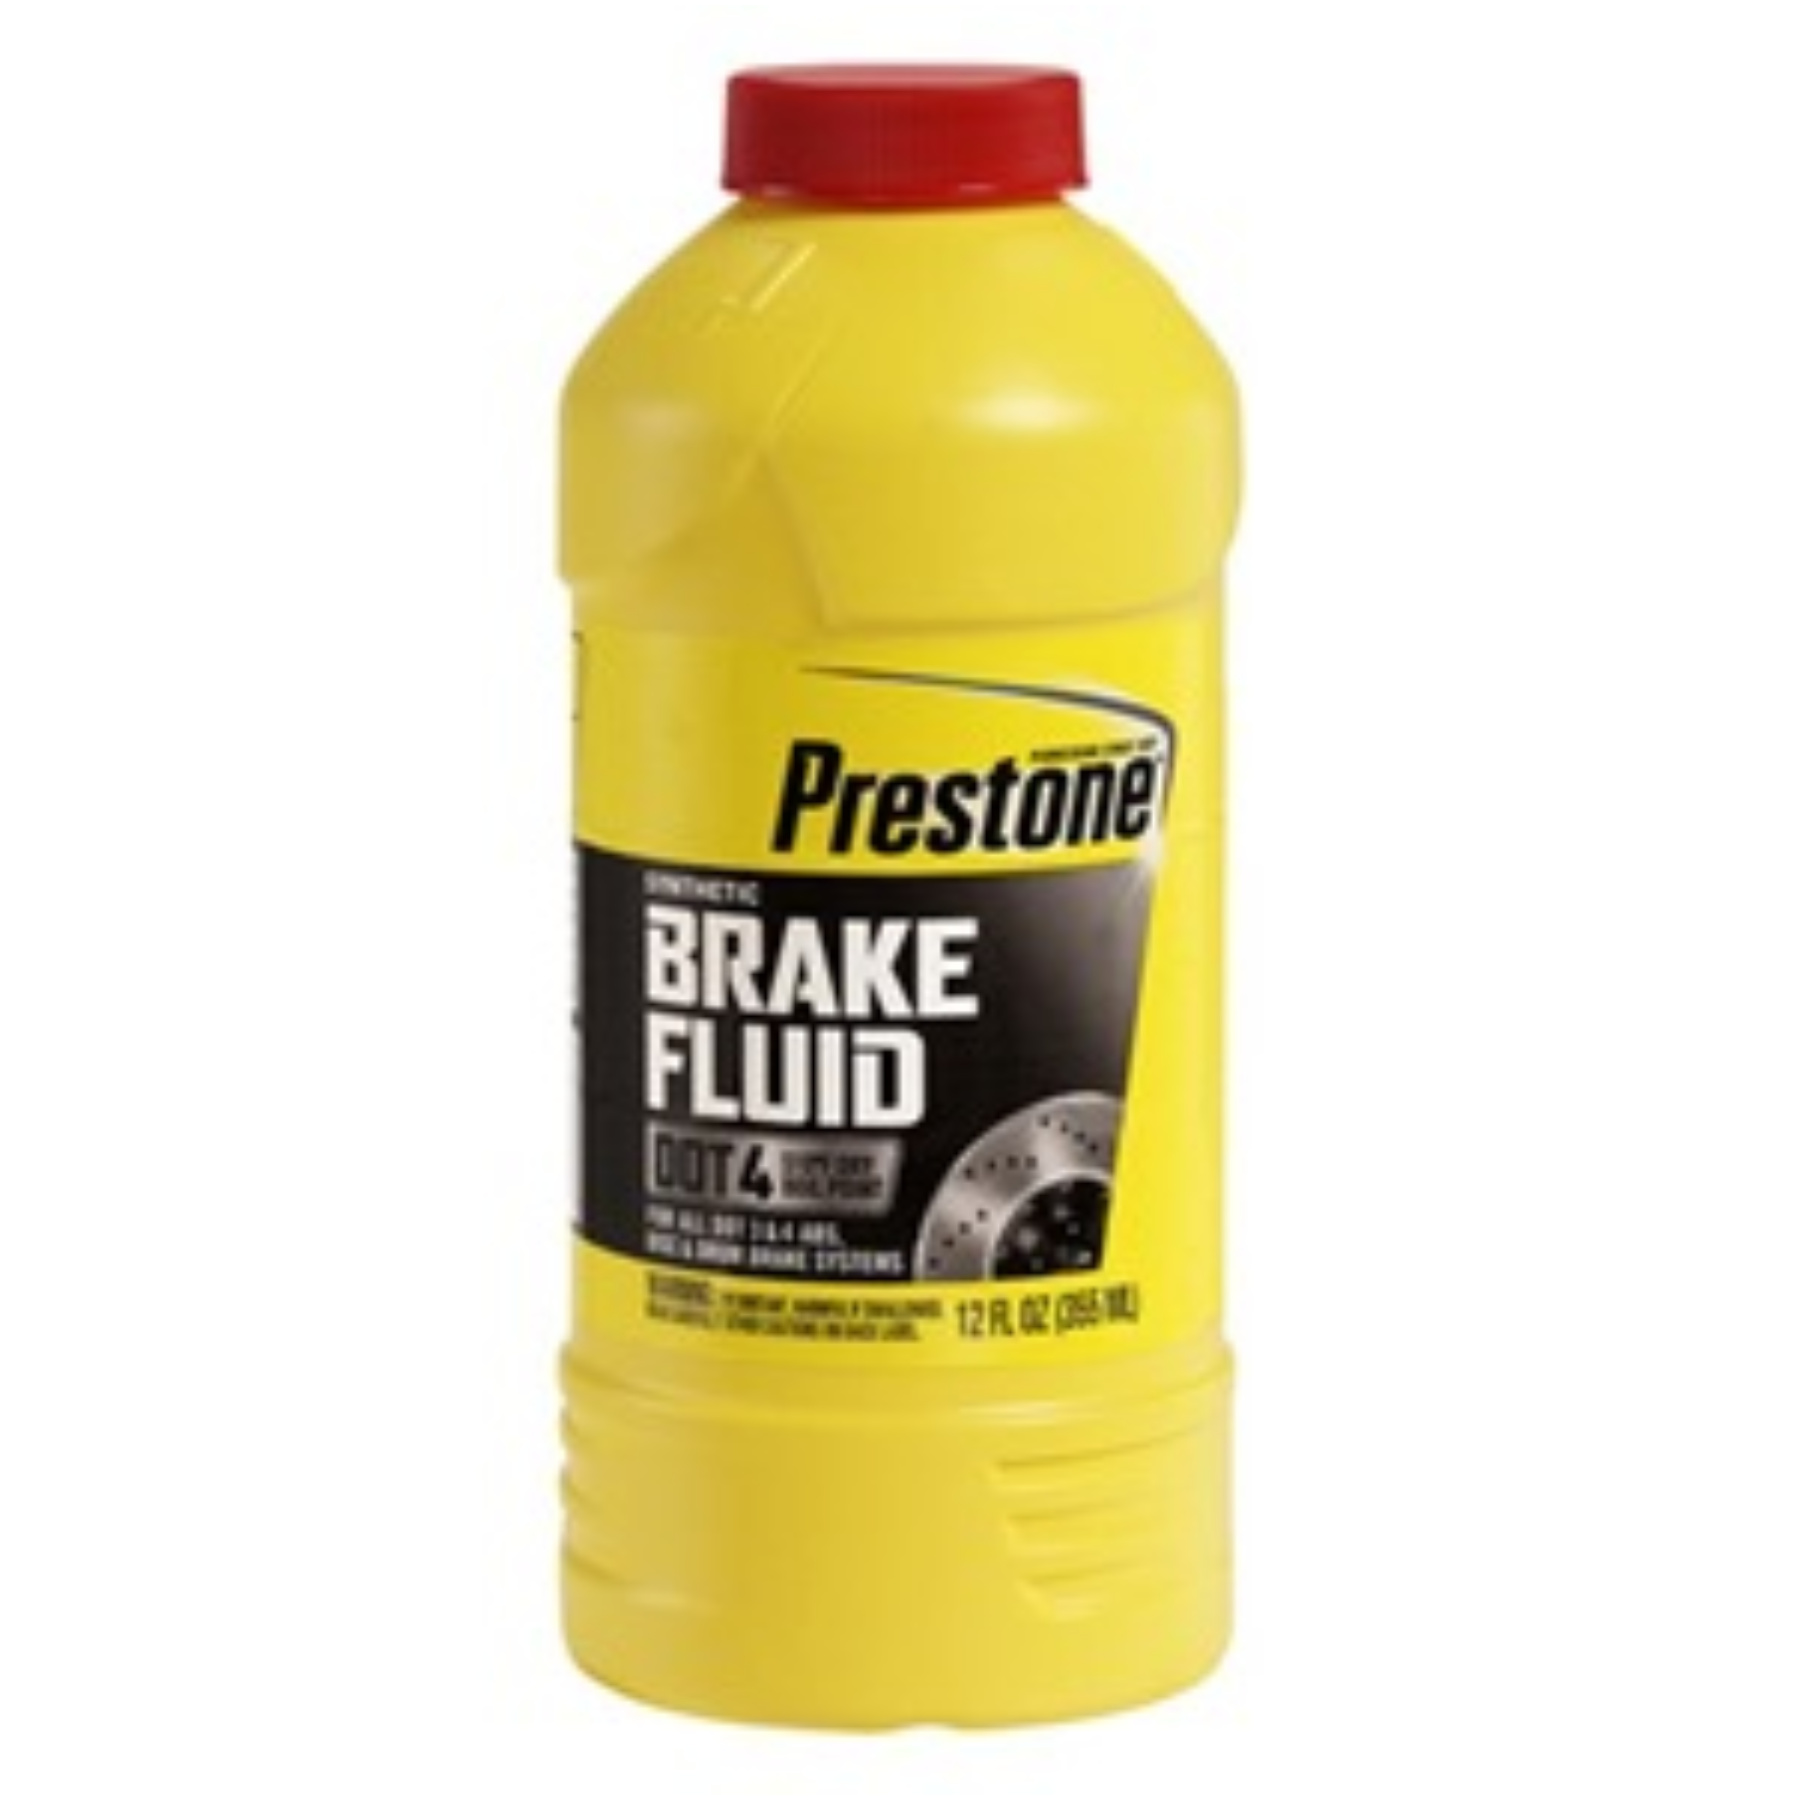 DOT 4 BRAKE FLUID 12OZ